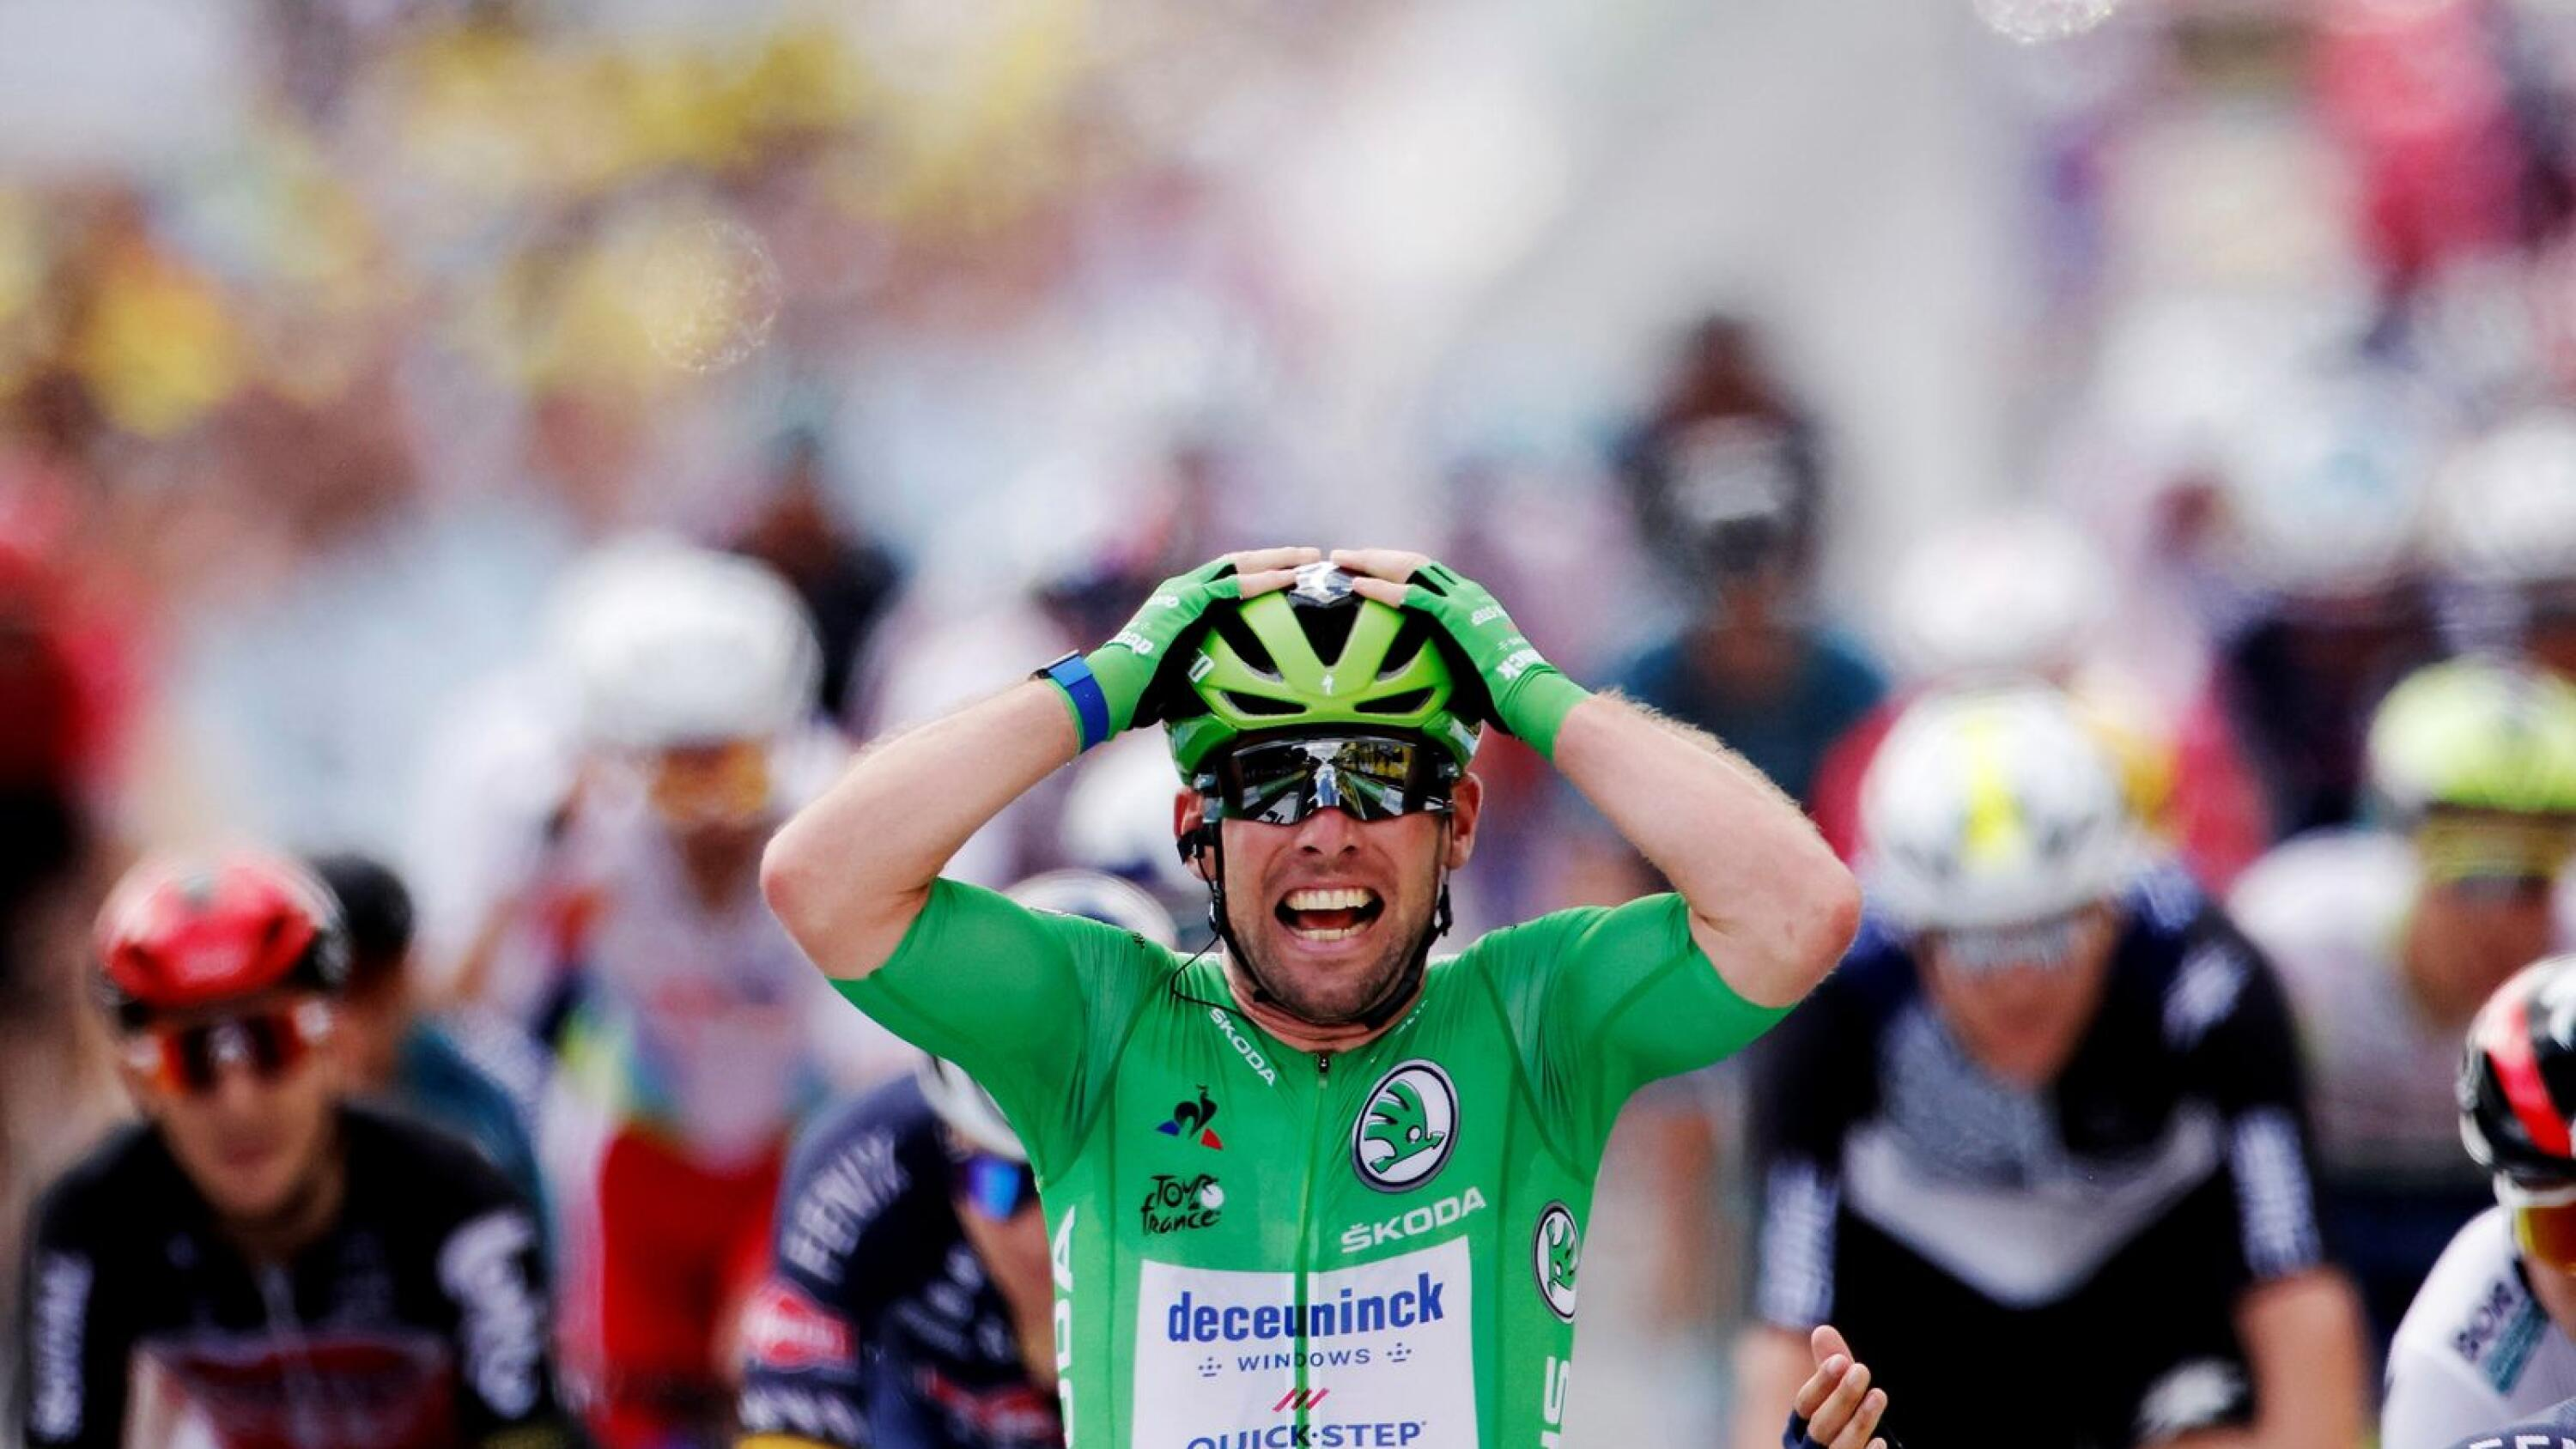 Deceuninck–Quick-Step rider Mark Cavendish of Britain celebrates after winning stage 6 of the Tour de France on Thursday. Photo: Stephane Mahe/Reuters